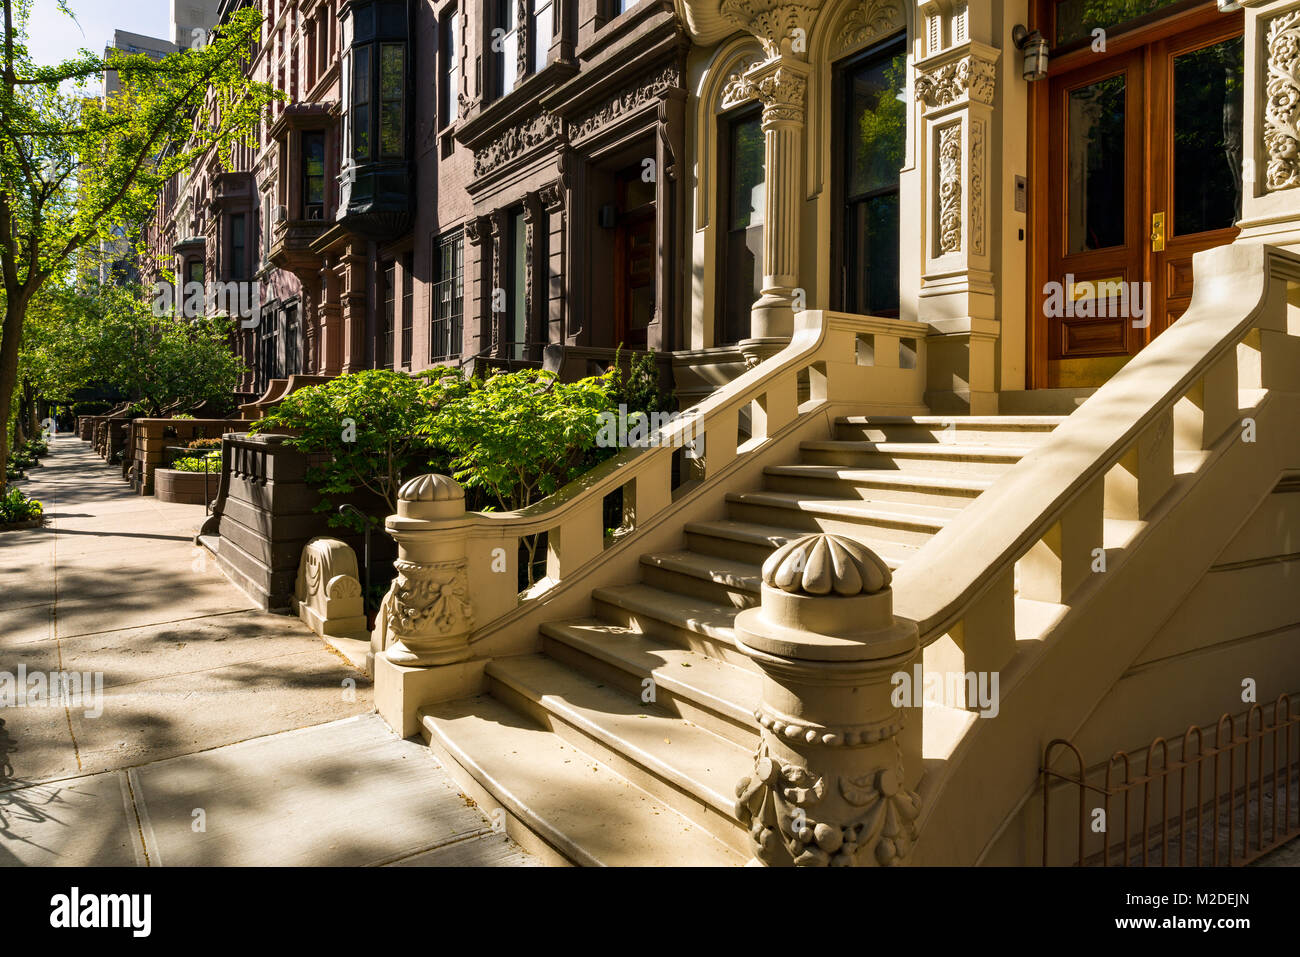 Brownstones with doorsteps and ornament in morning light. Upper West Side Street, Manhattan, New York City - Stock Image